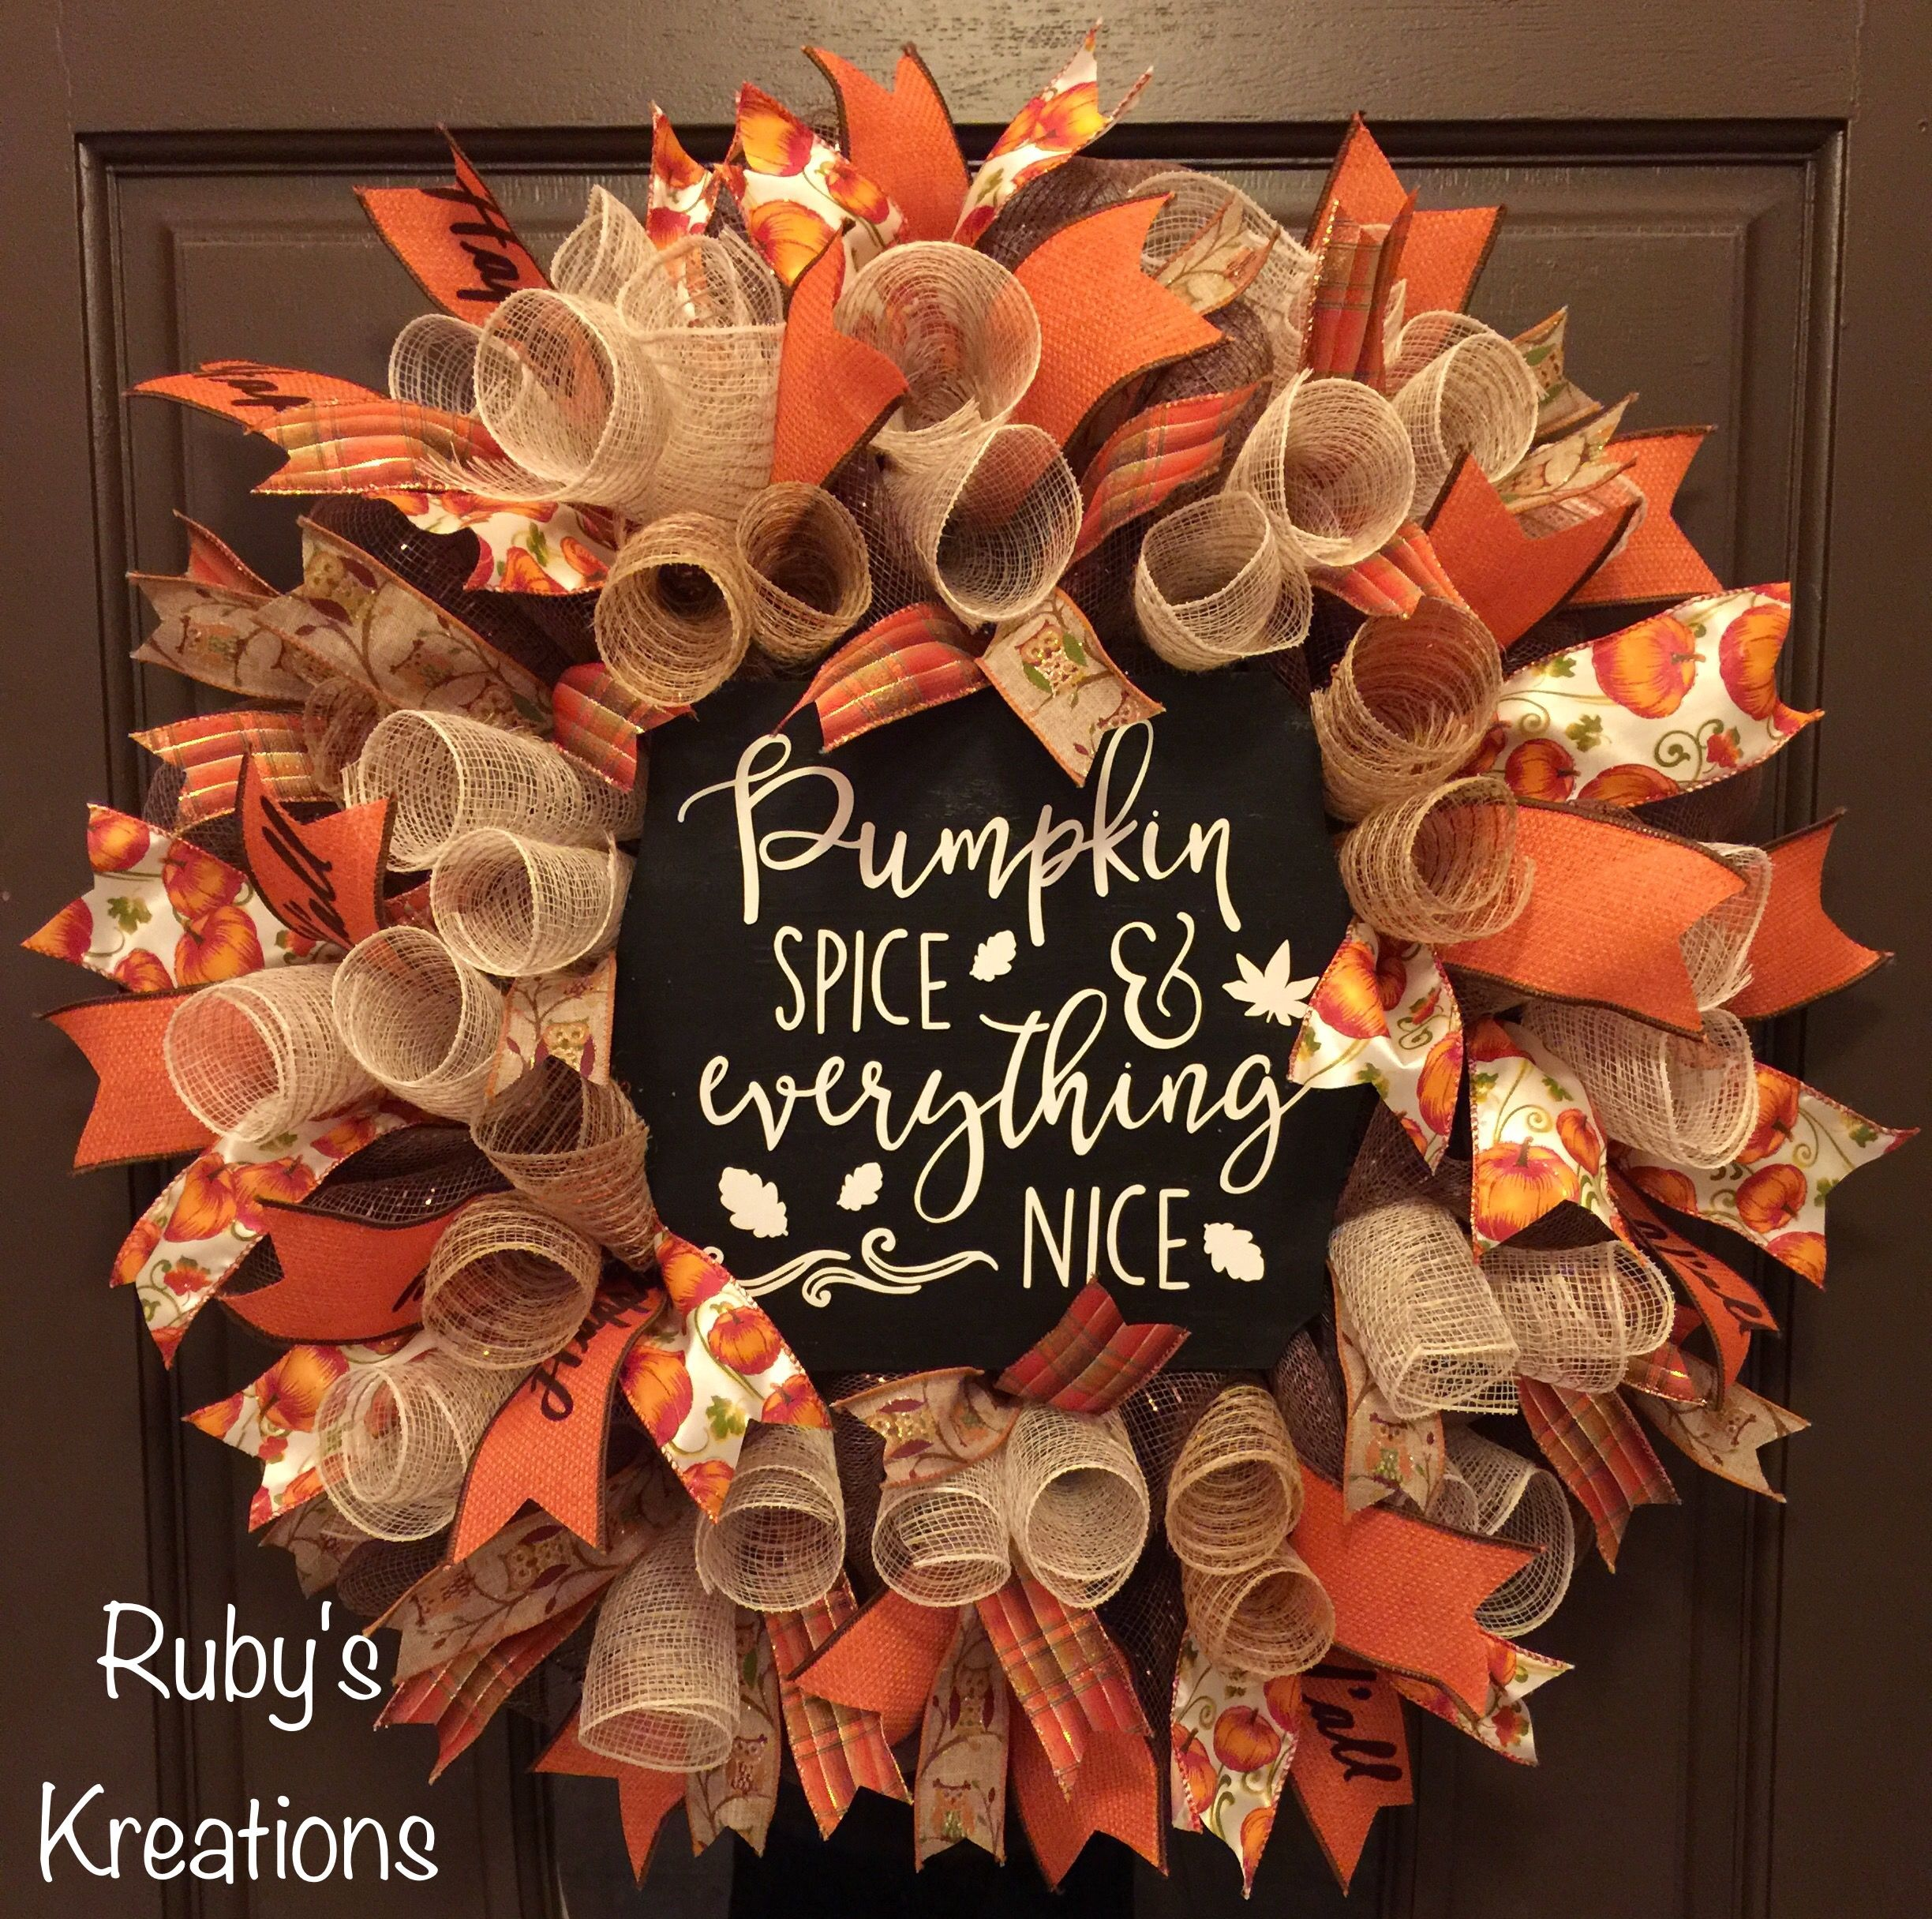 12 Easy Diy Deco Mesh Wreaths For Fall: Fall Wreath - Pumpkin Spice Wreath - Autumn Wreath